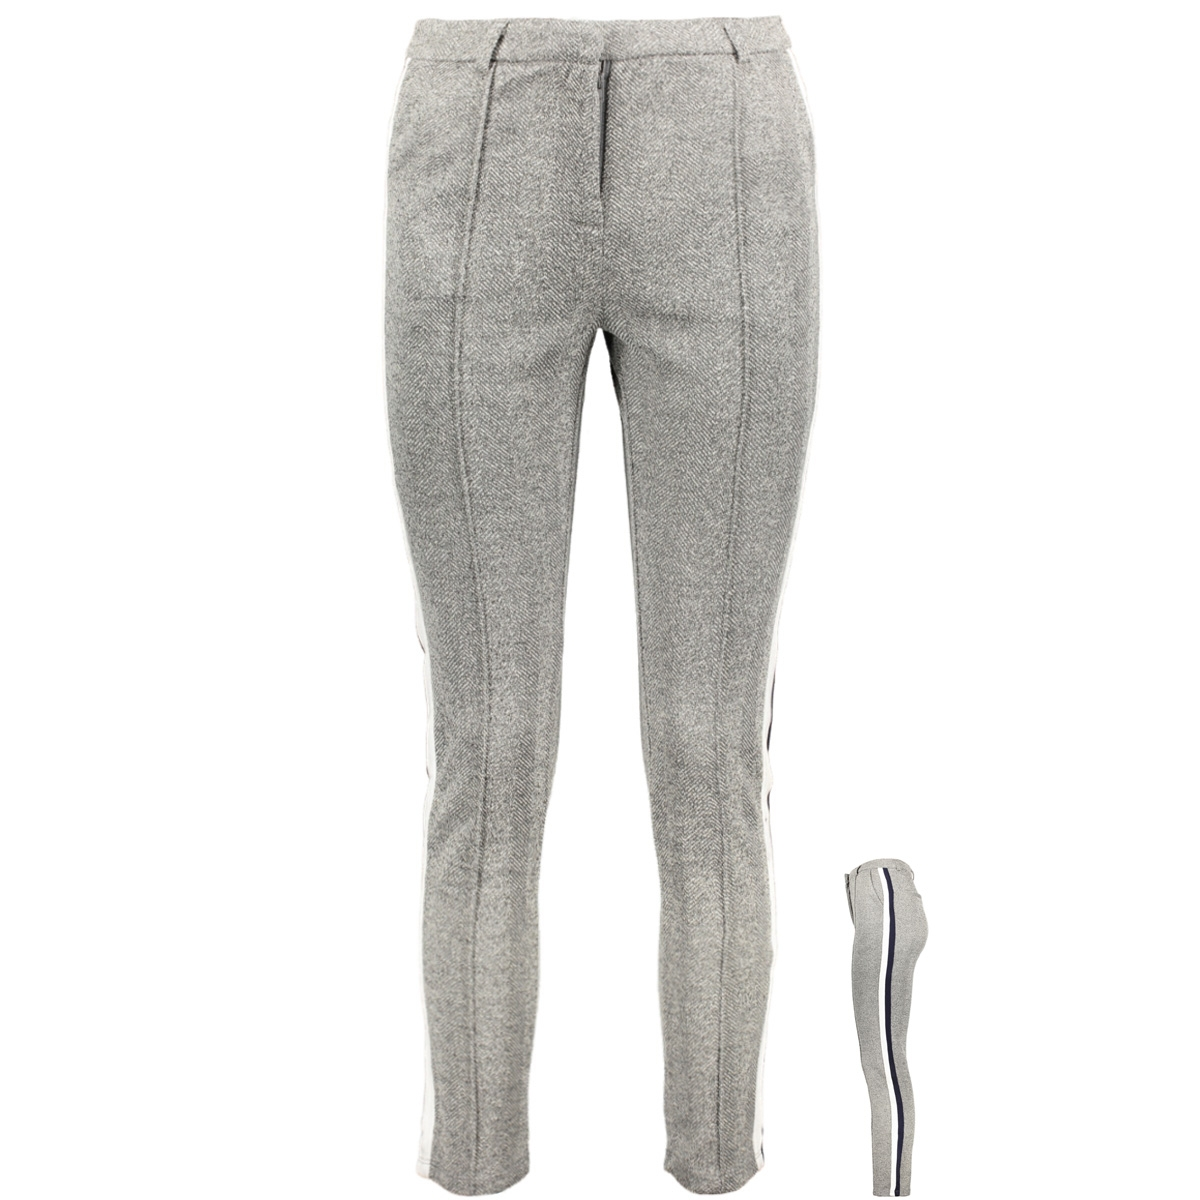 visillas rw 7/8 pant 14050448 vila broek medium grey melange